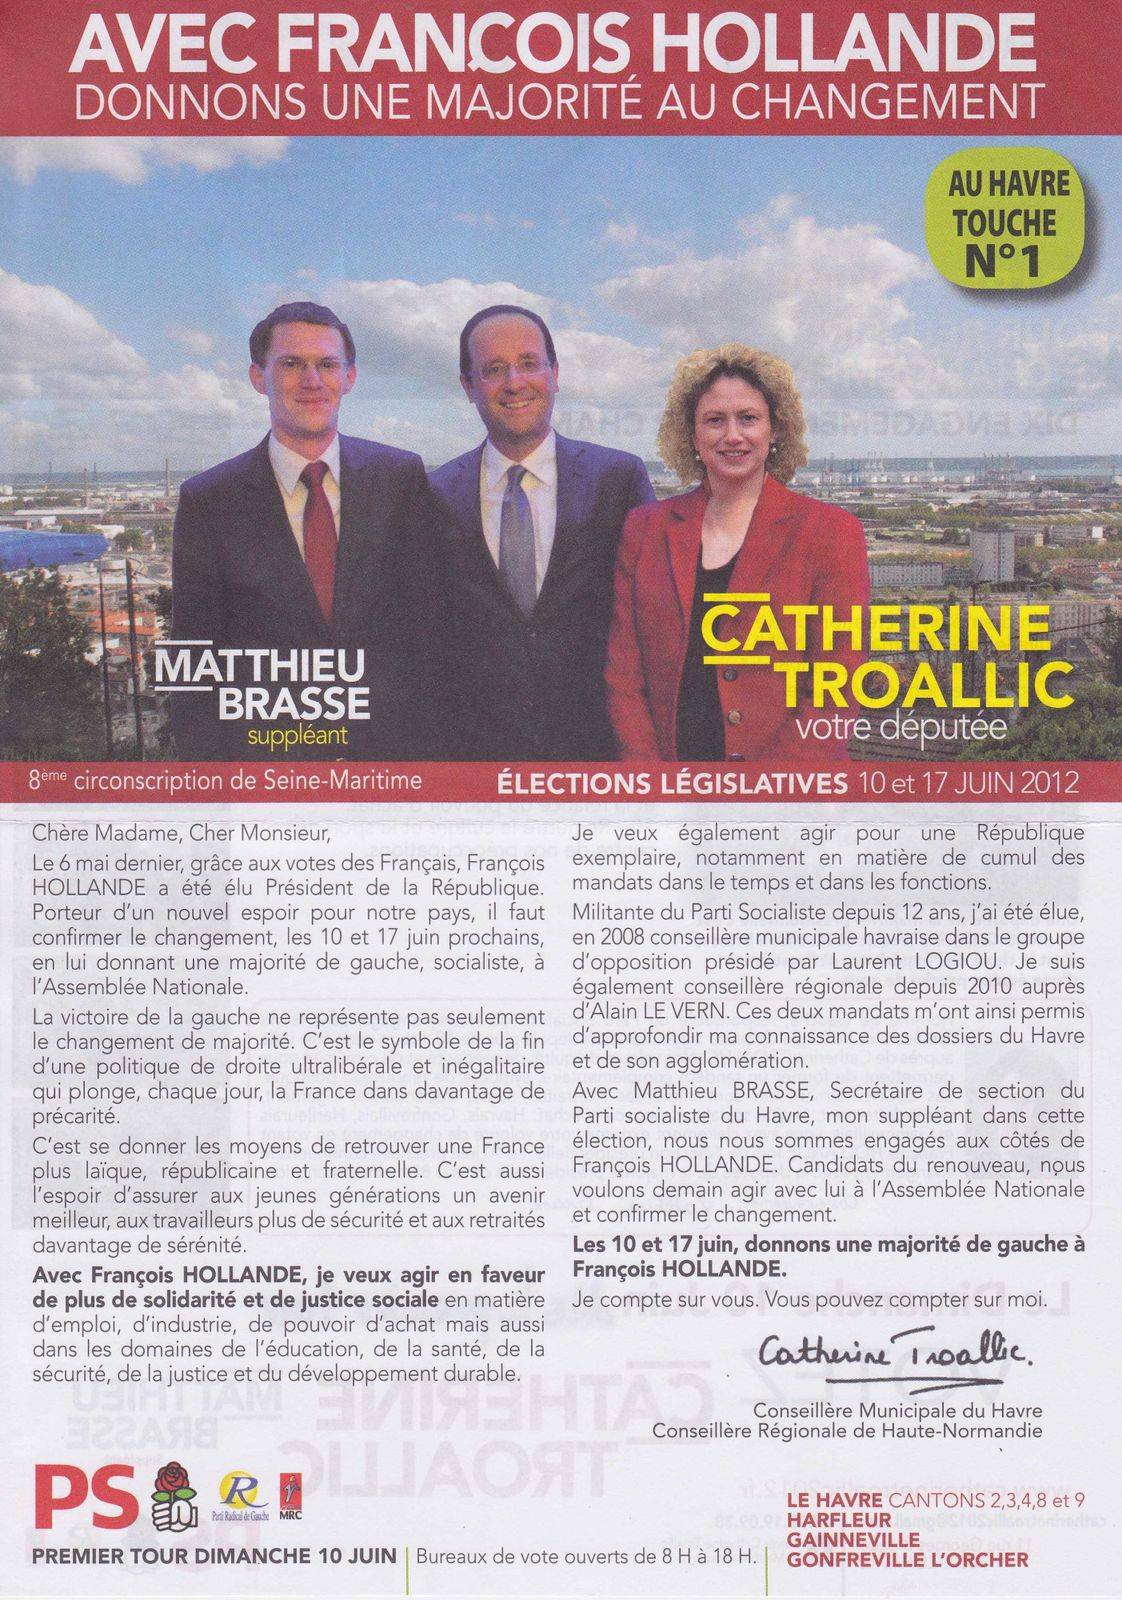 5-2012-Legislative-Catherine-Troallic-PS-Le-Havre.jpg